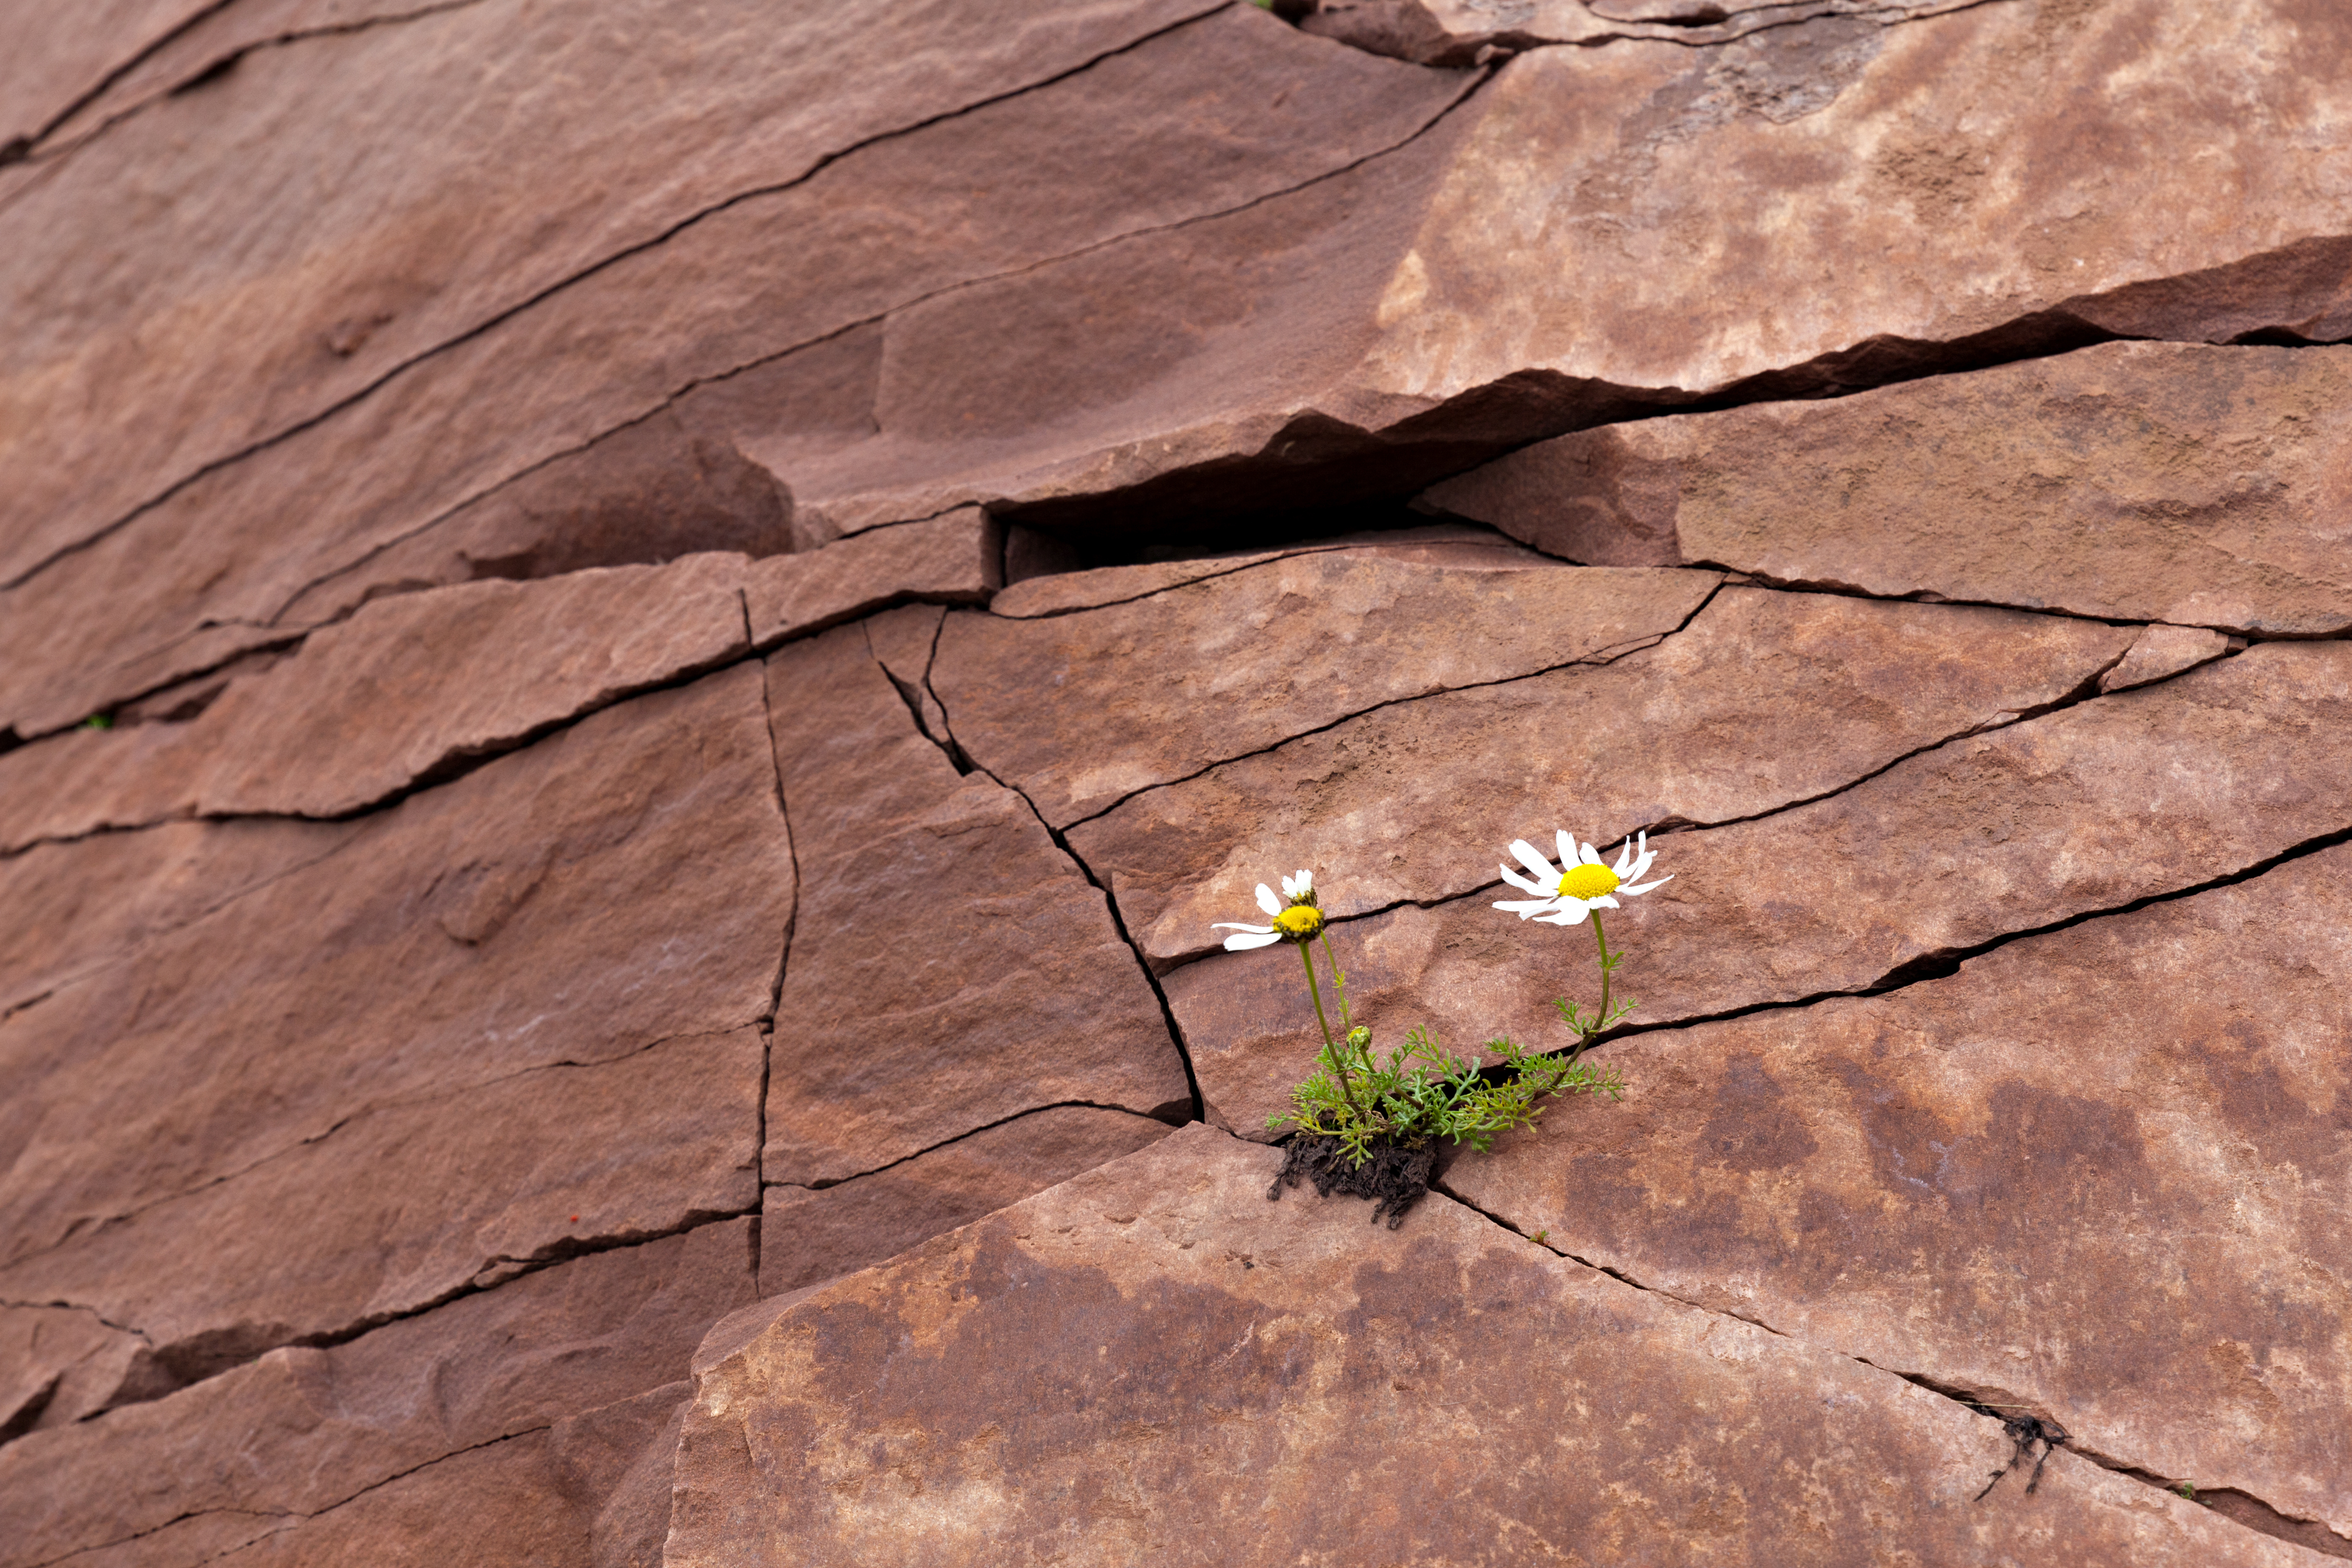 Arctic dwarf daisies grew in a crack in the rock. The concept of the will to live